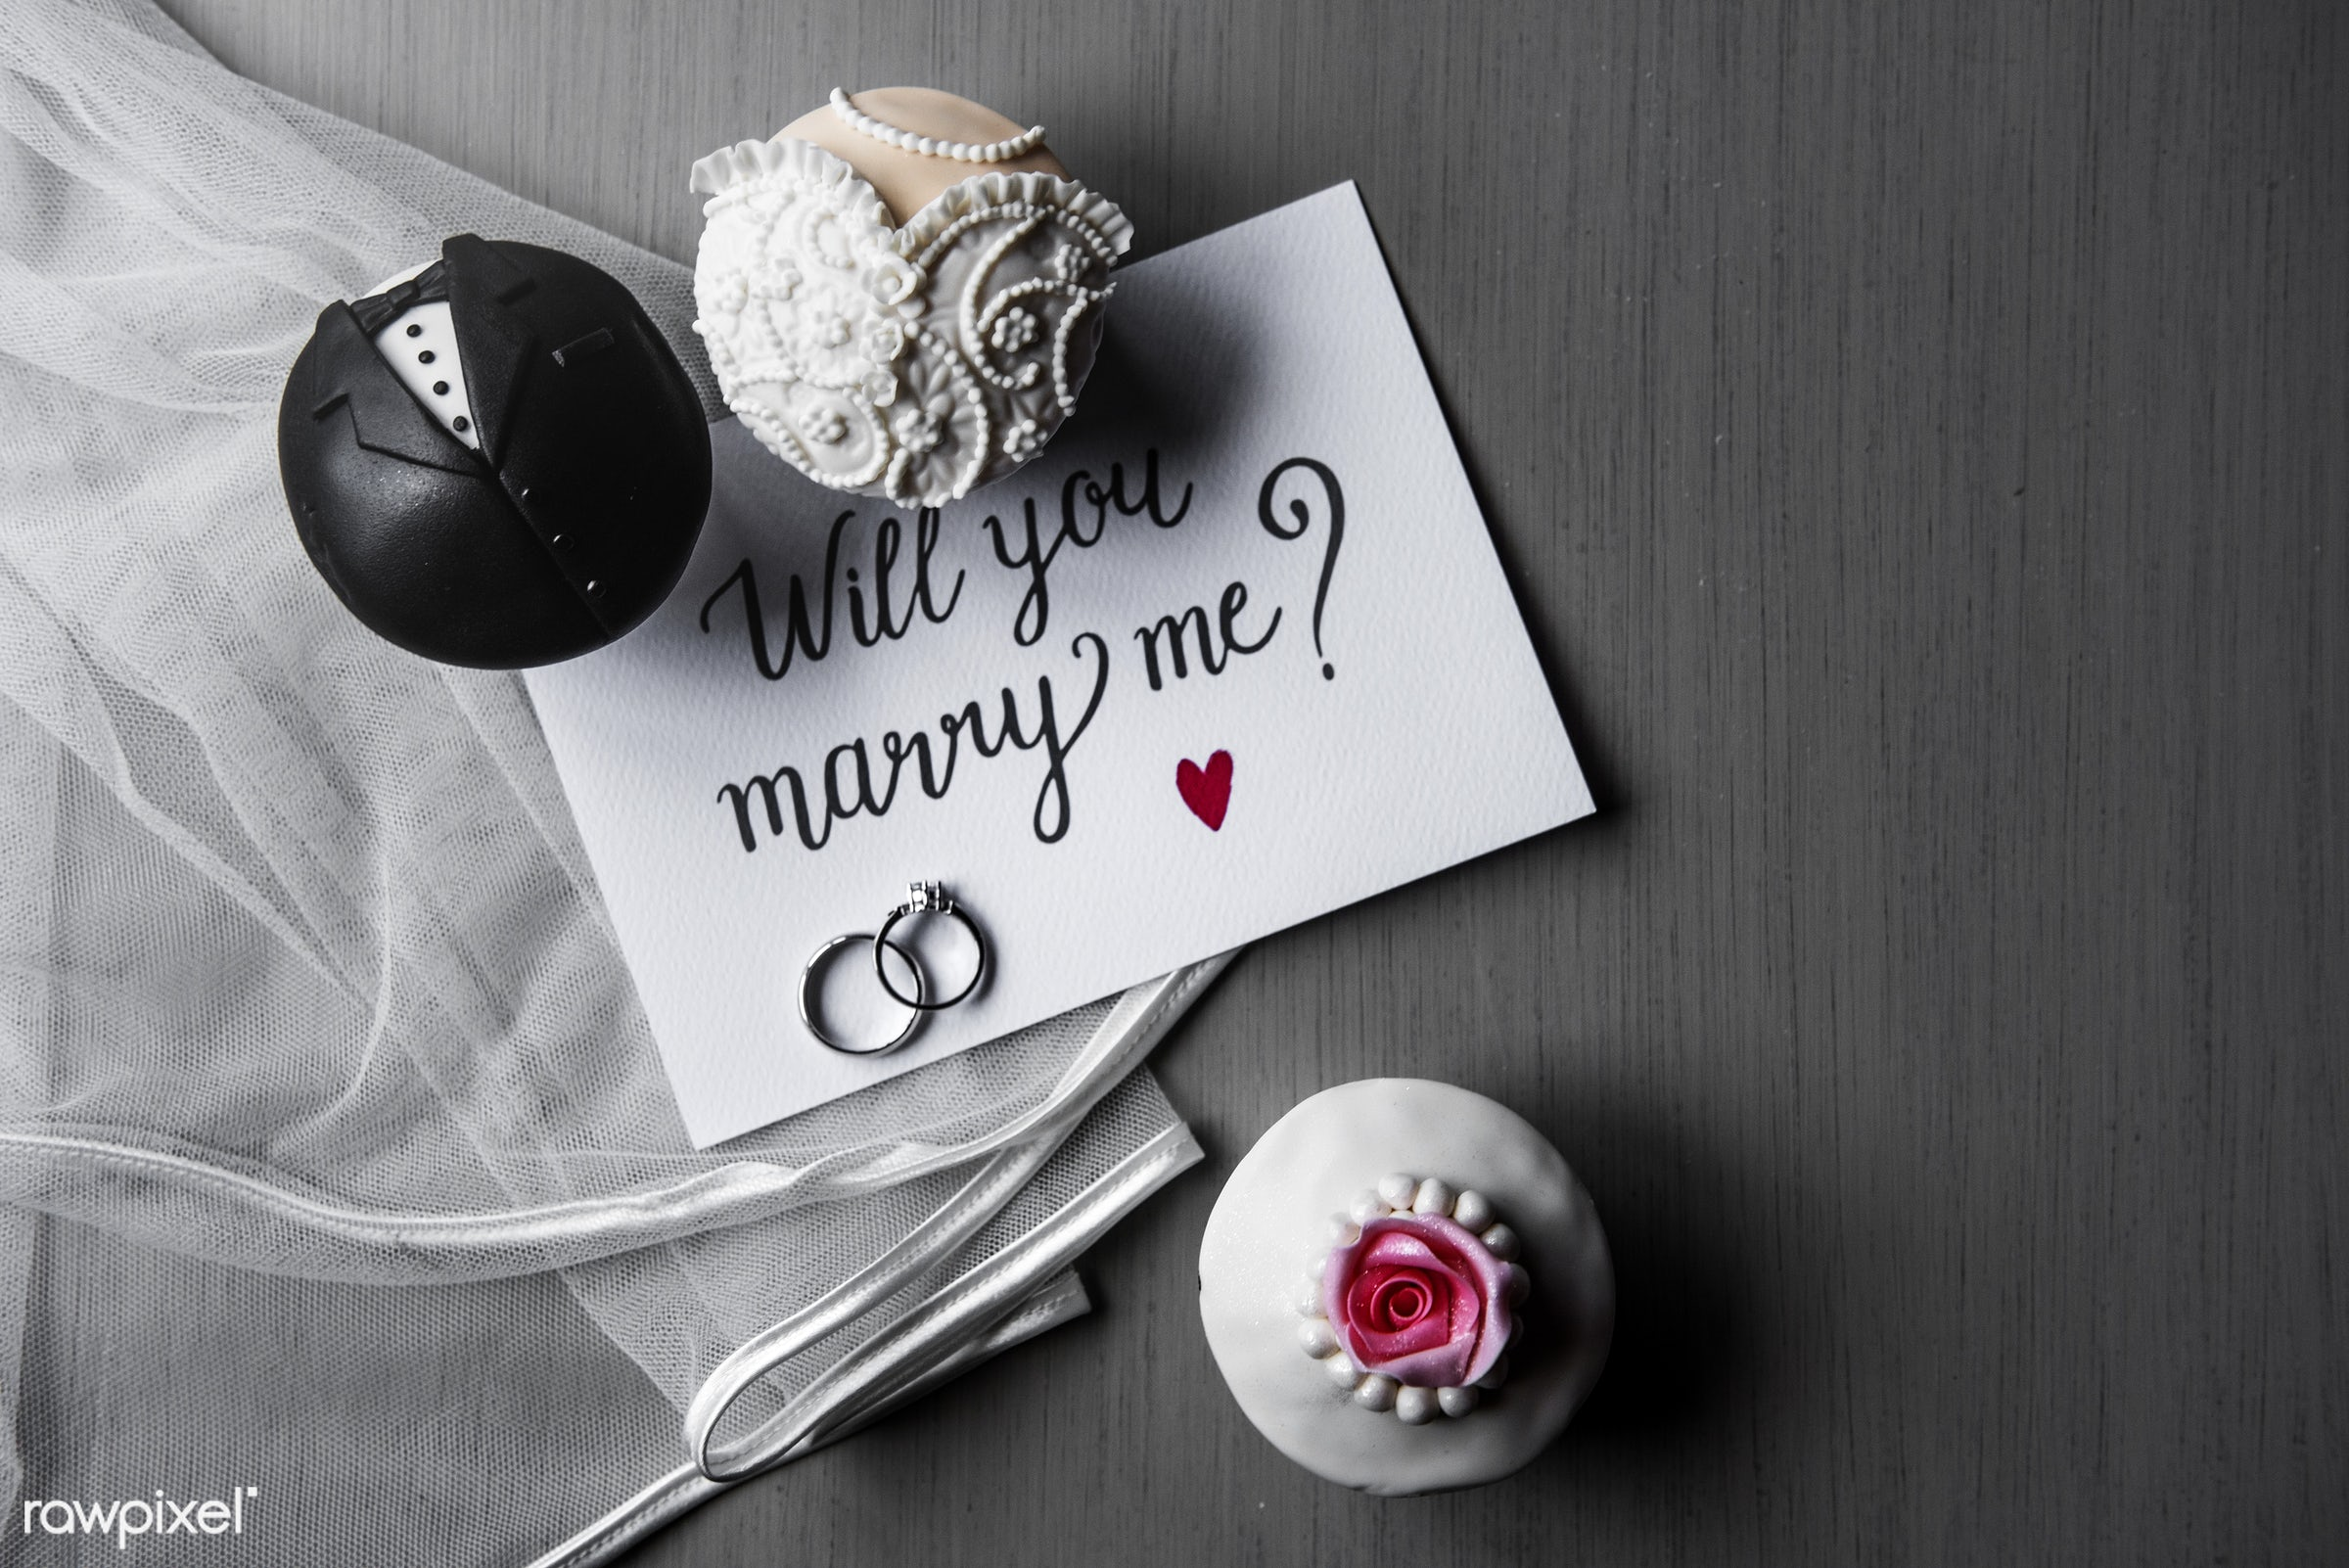 tea time, nobody, relax, occasion, party, together, bakery, event, gather, will you marry me, celebrate, dessert, cake,...